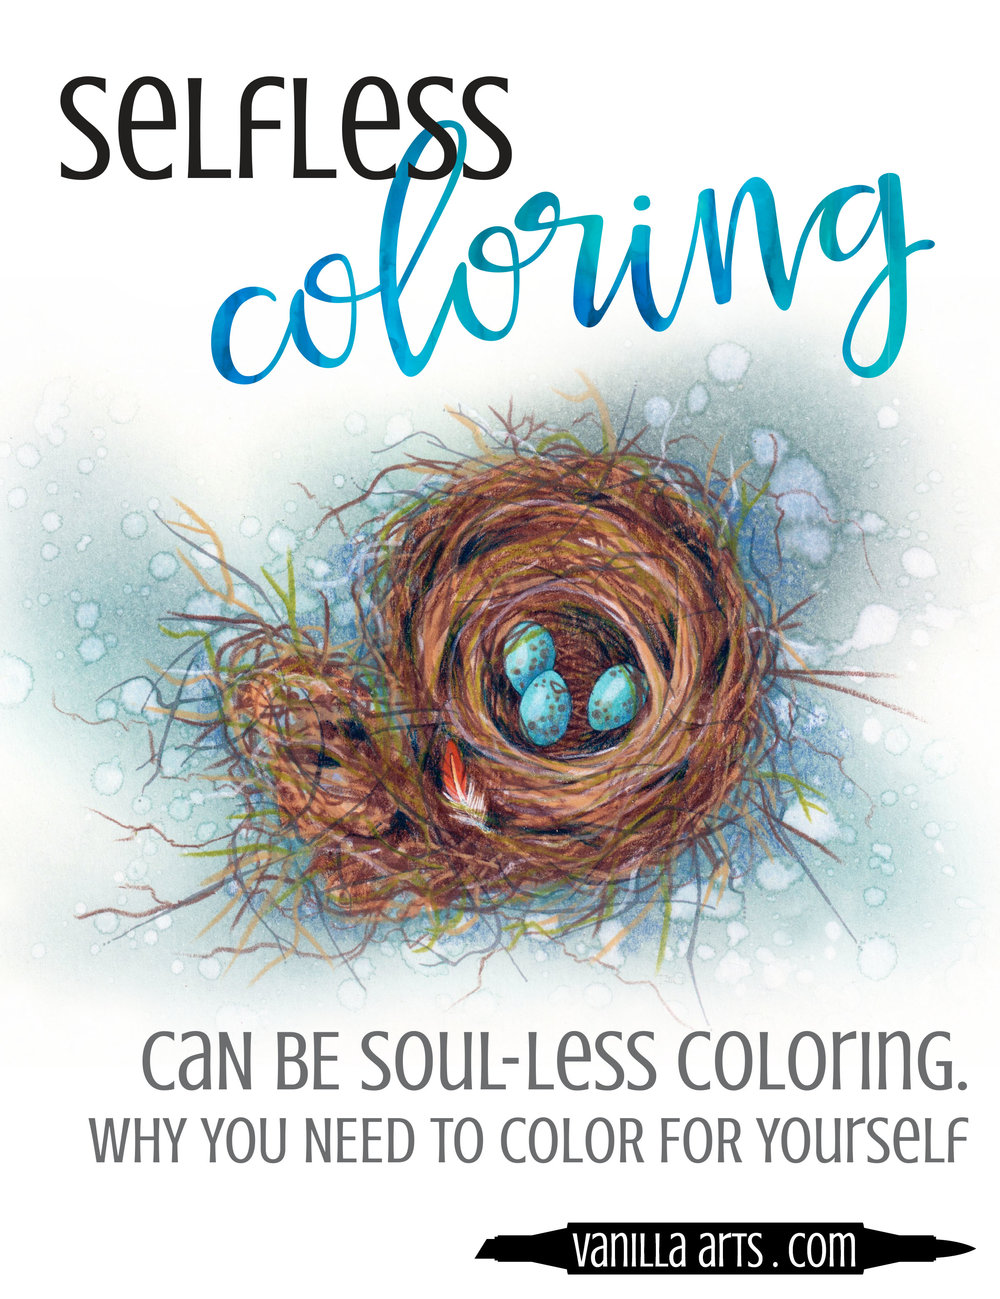 It's okay to be selfish in art. If you only color cards and presents to give away, you're killing yourself slowly. Why you need to start coloring for yourself. | VanillaArts.com- Copic Markers, colored pencils, watercolor